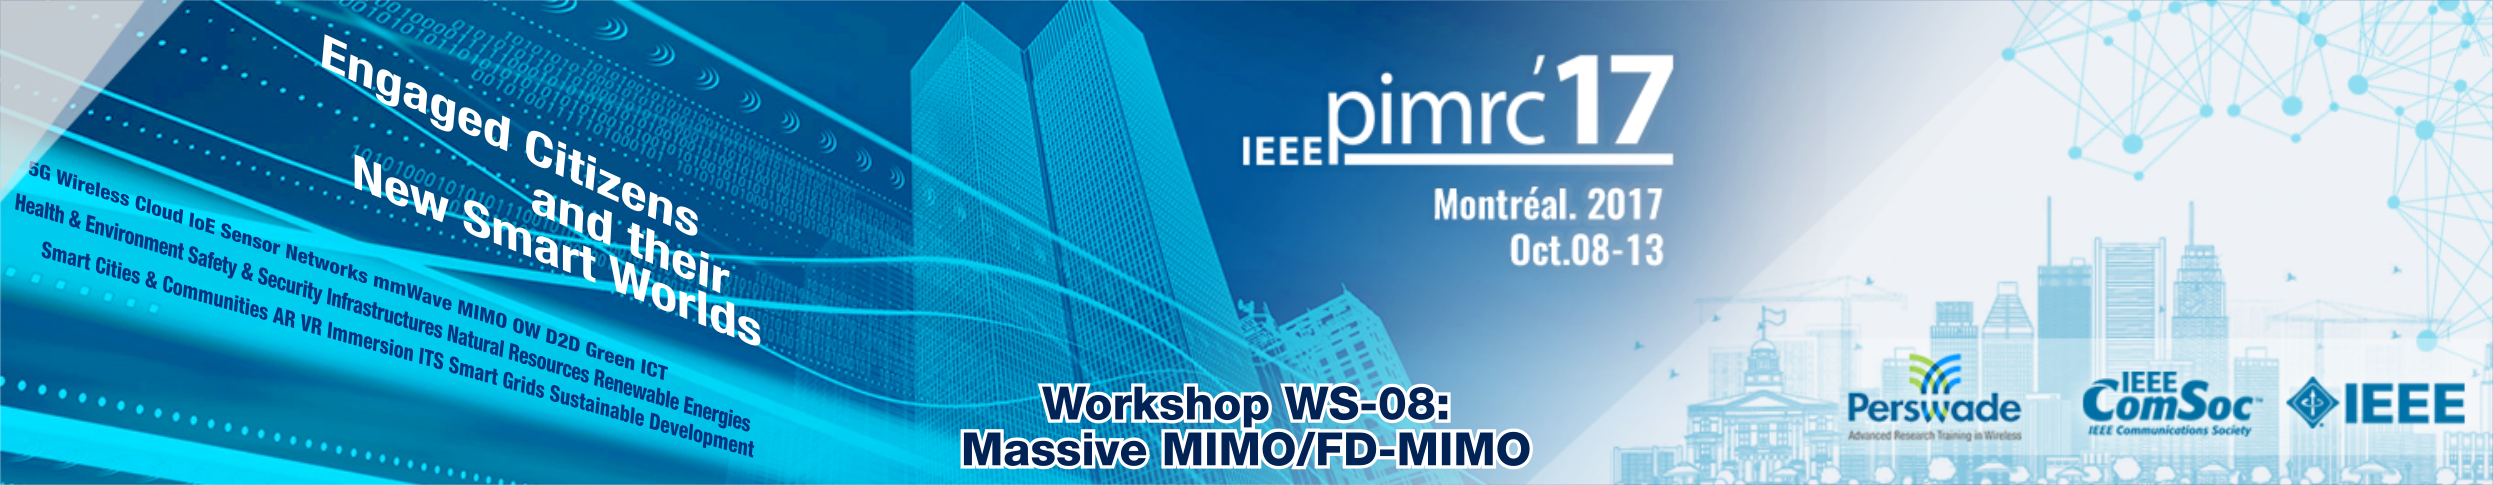 IEEE PIMRC 2017 Workshop WS-08